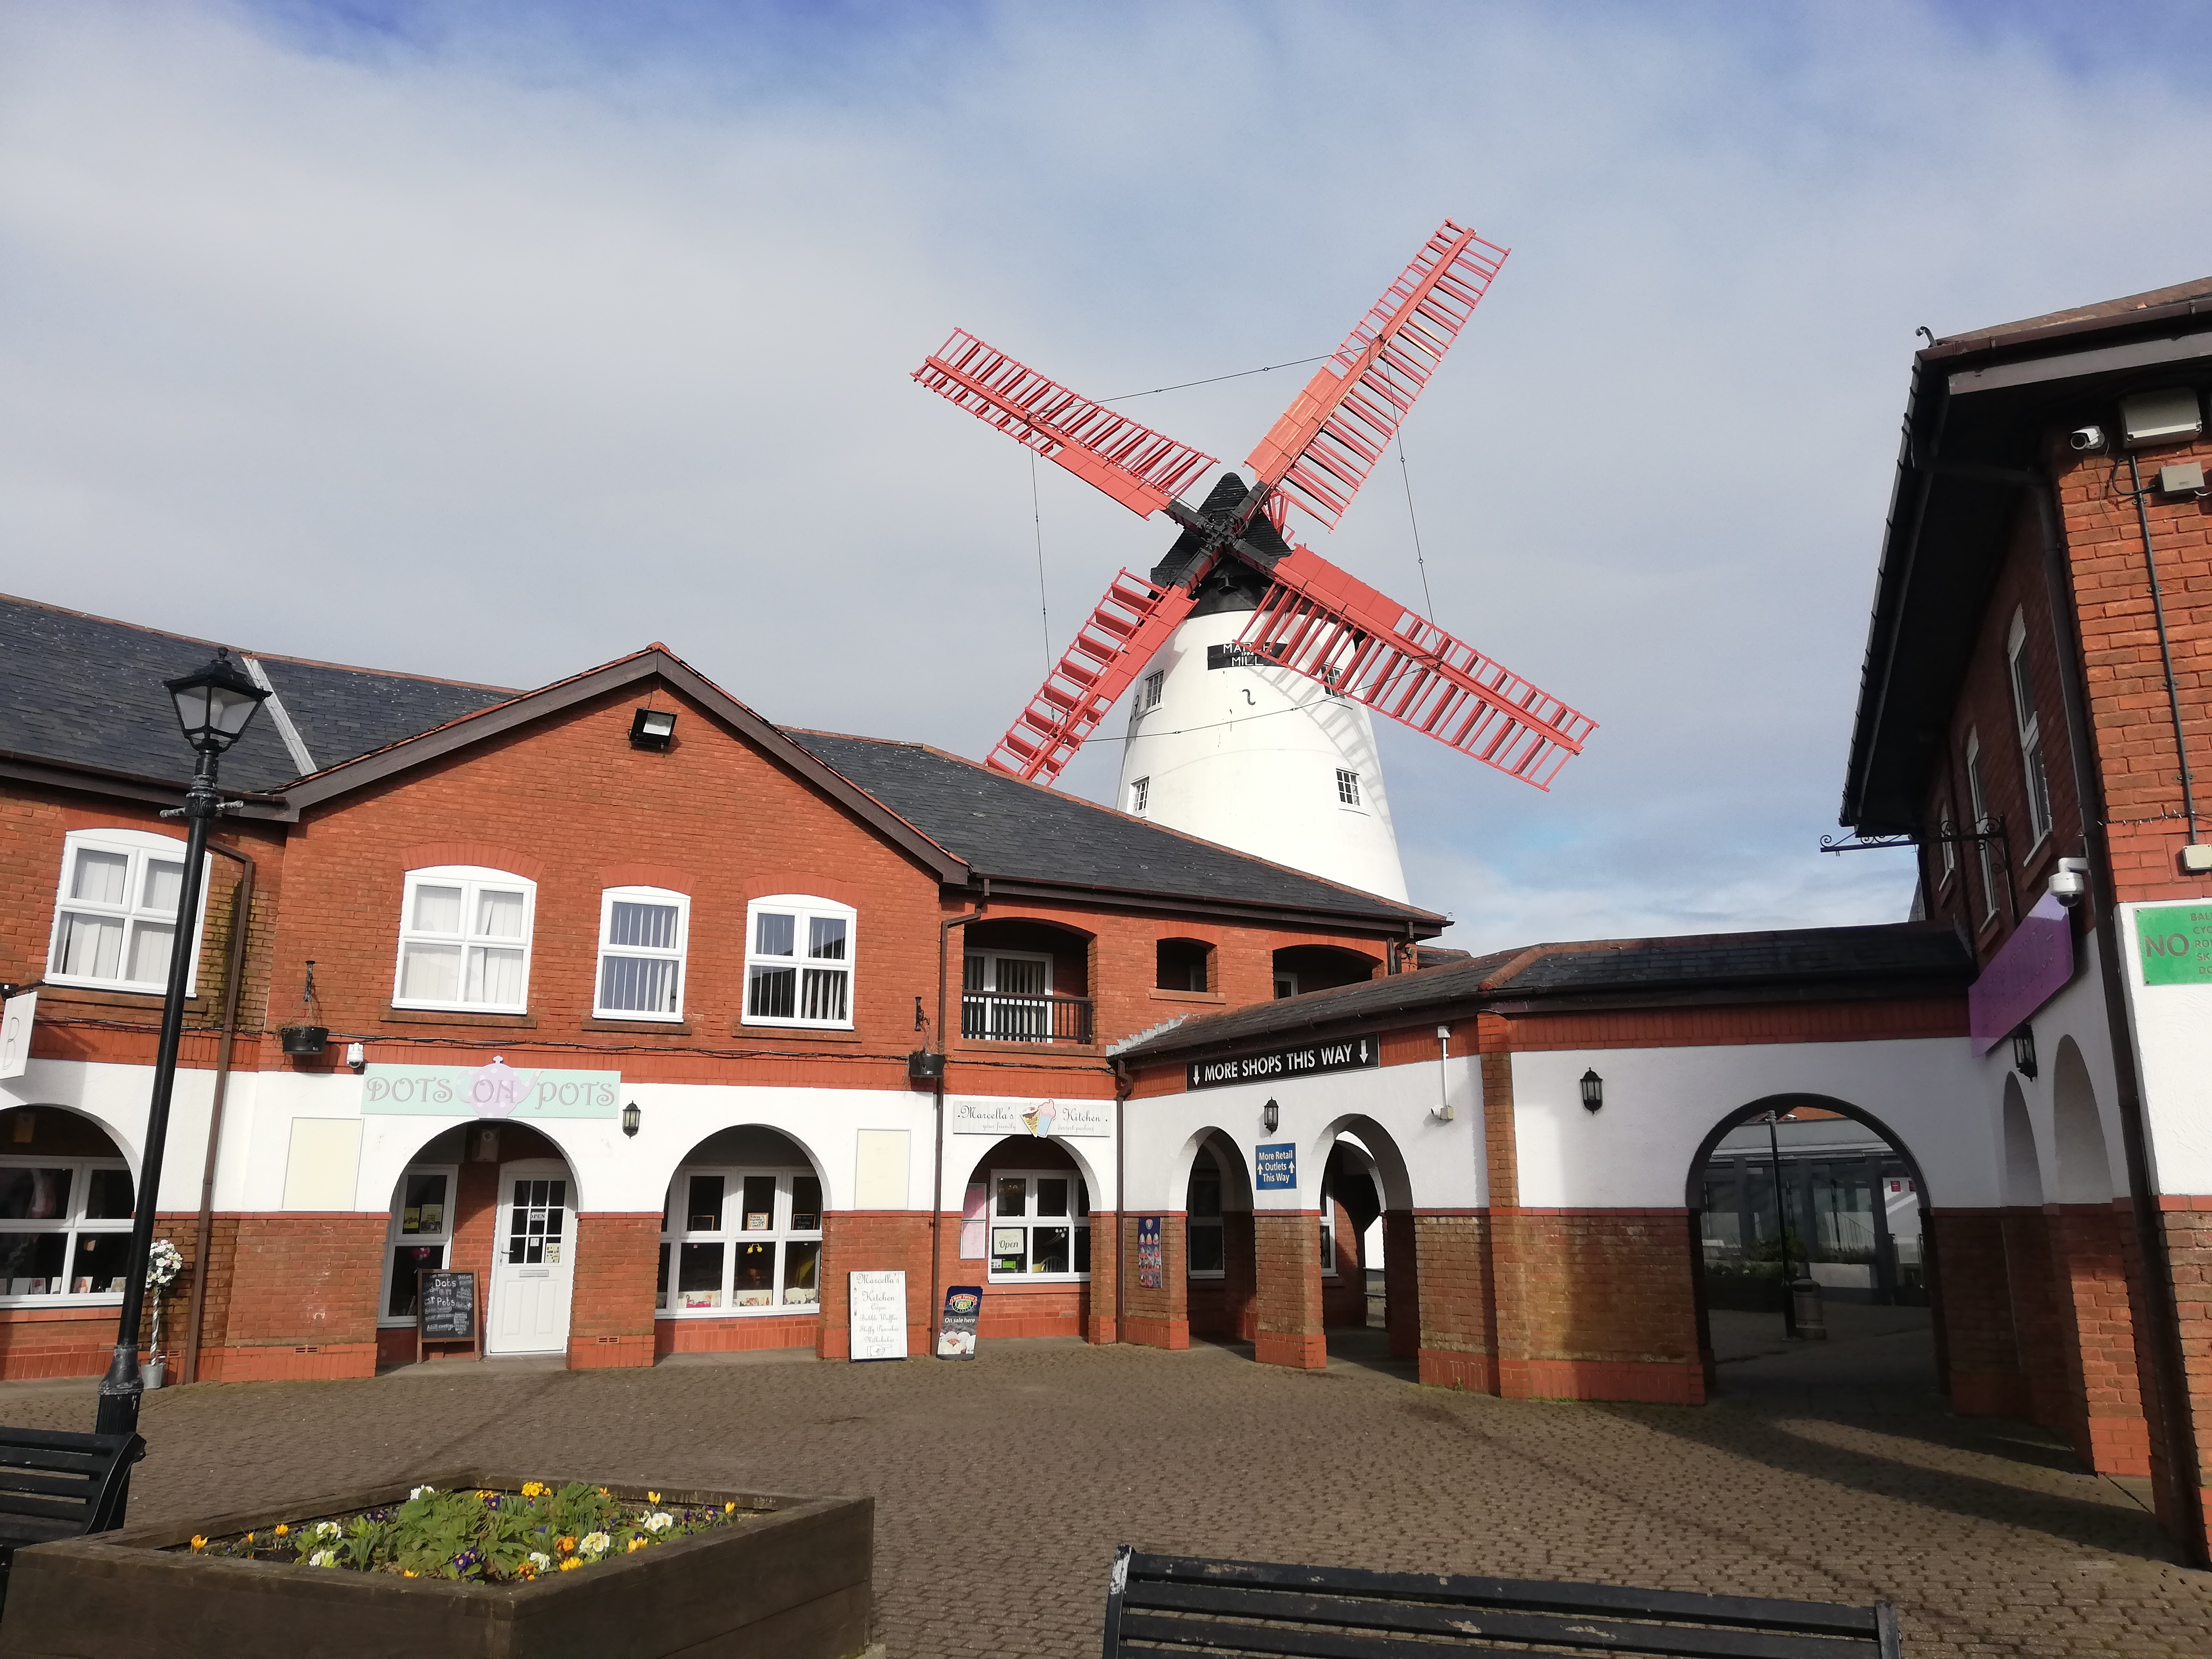 Concerns about the retail future of Marsh Mill shopping village